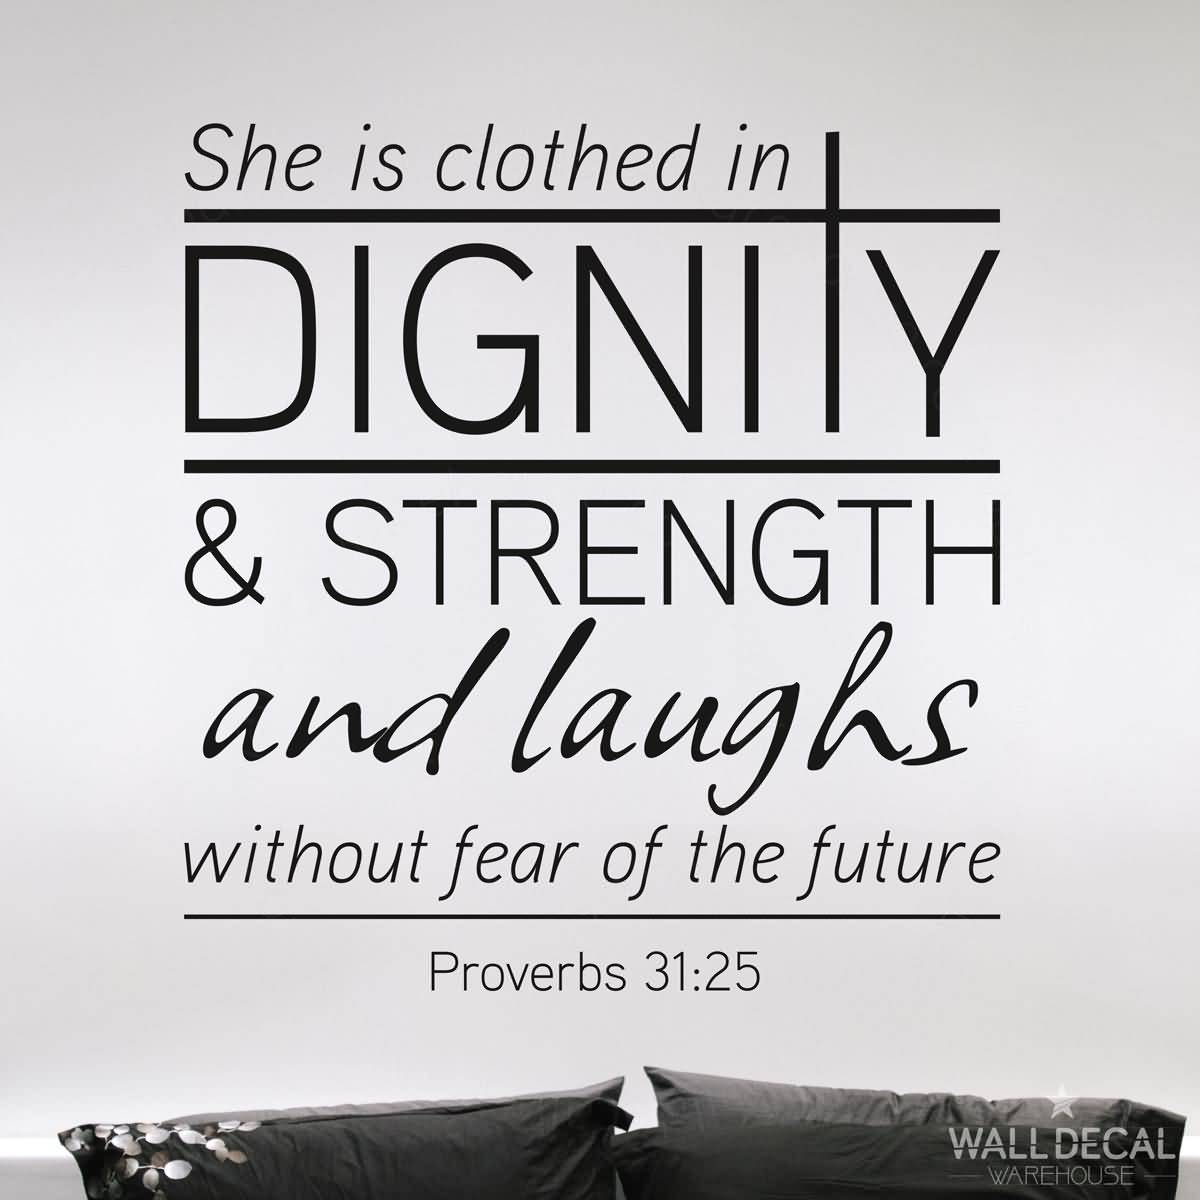 Best Quotes About Dignity: 48 Most Popular Dignity Quotes And Sayings Collection